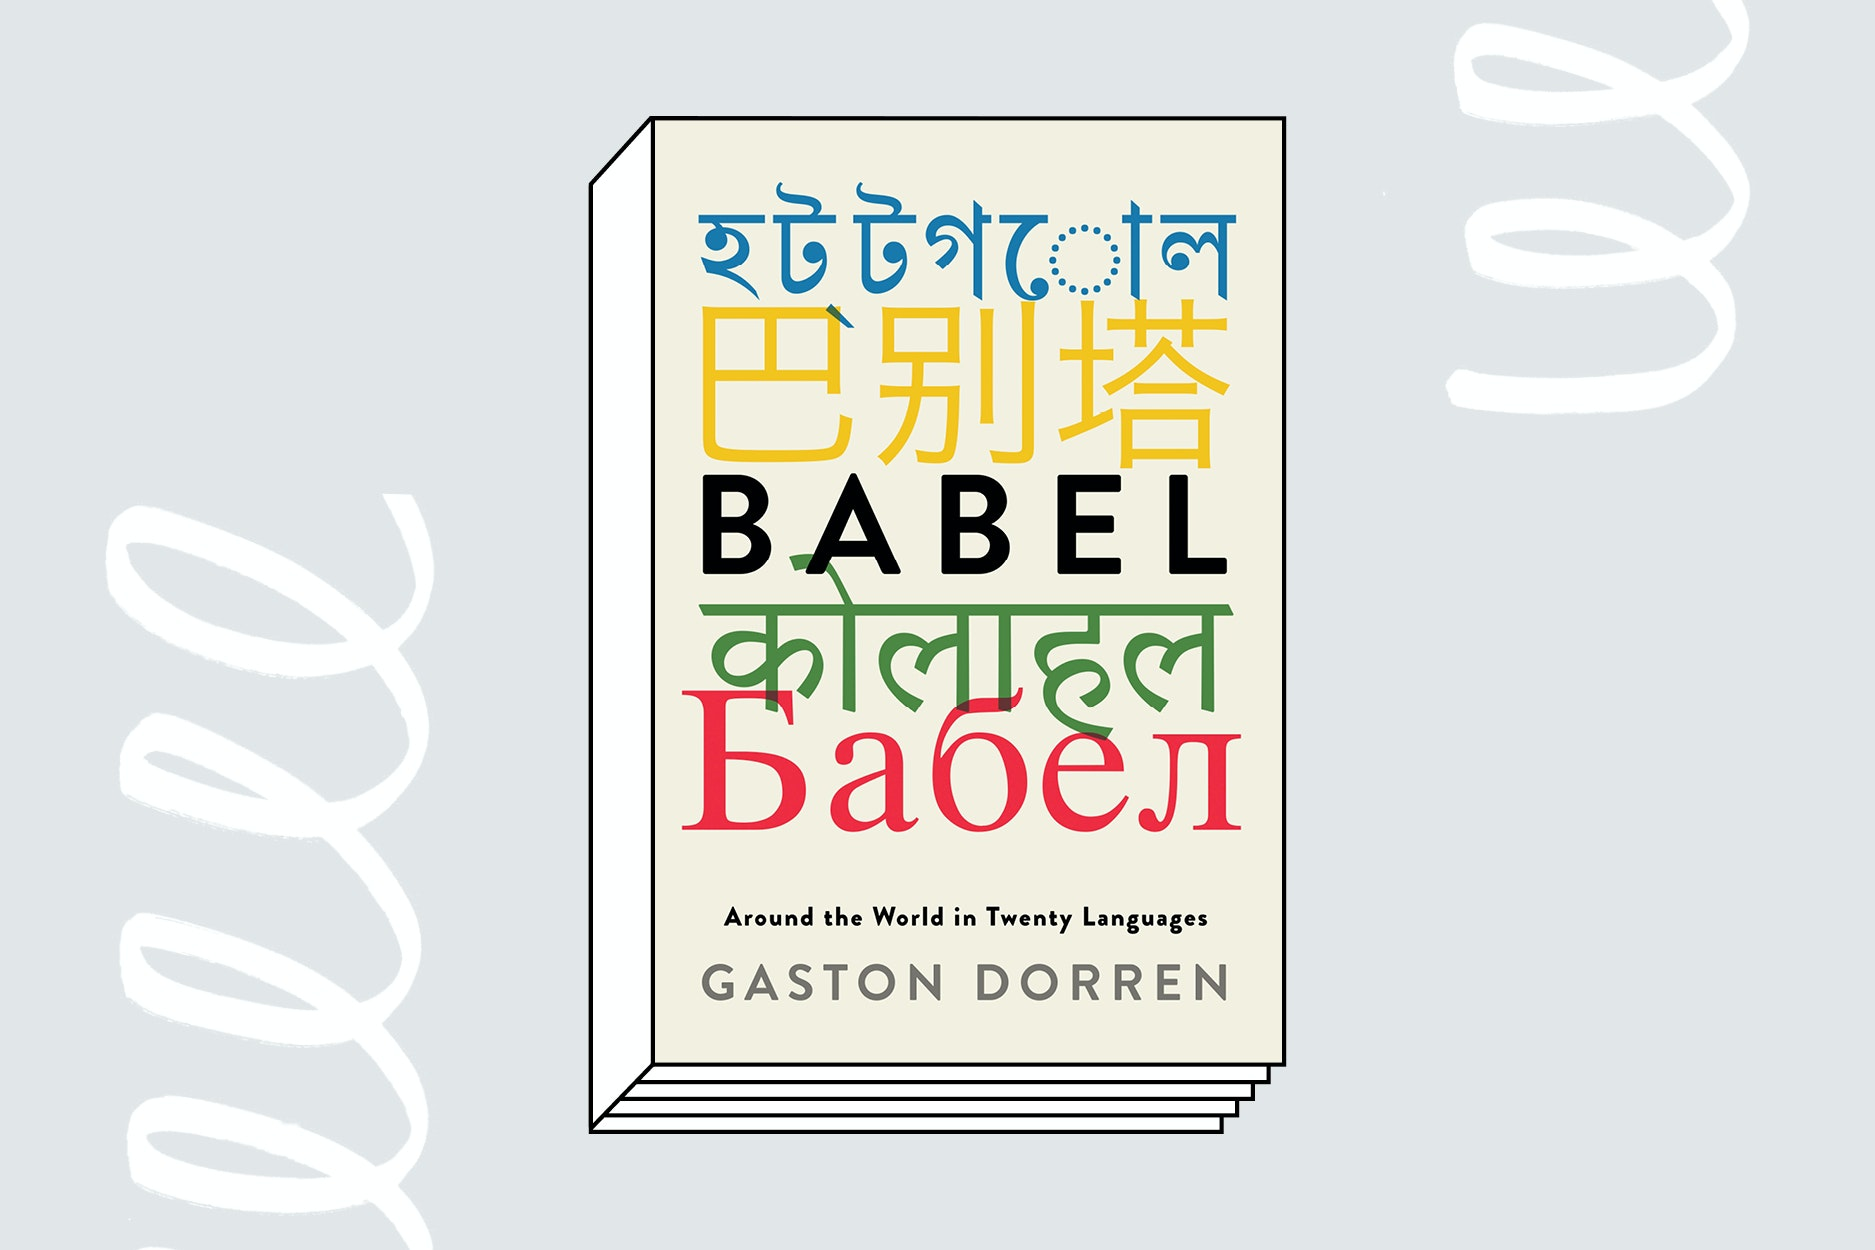 Babel: Around the World in 20 Languages (Atlantic Monthly Press, 2018)